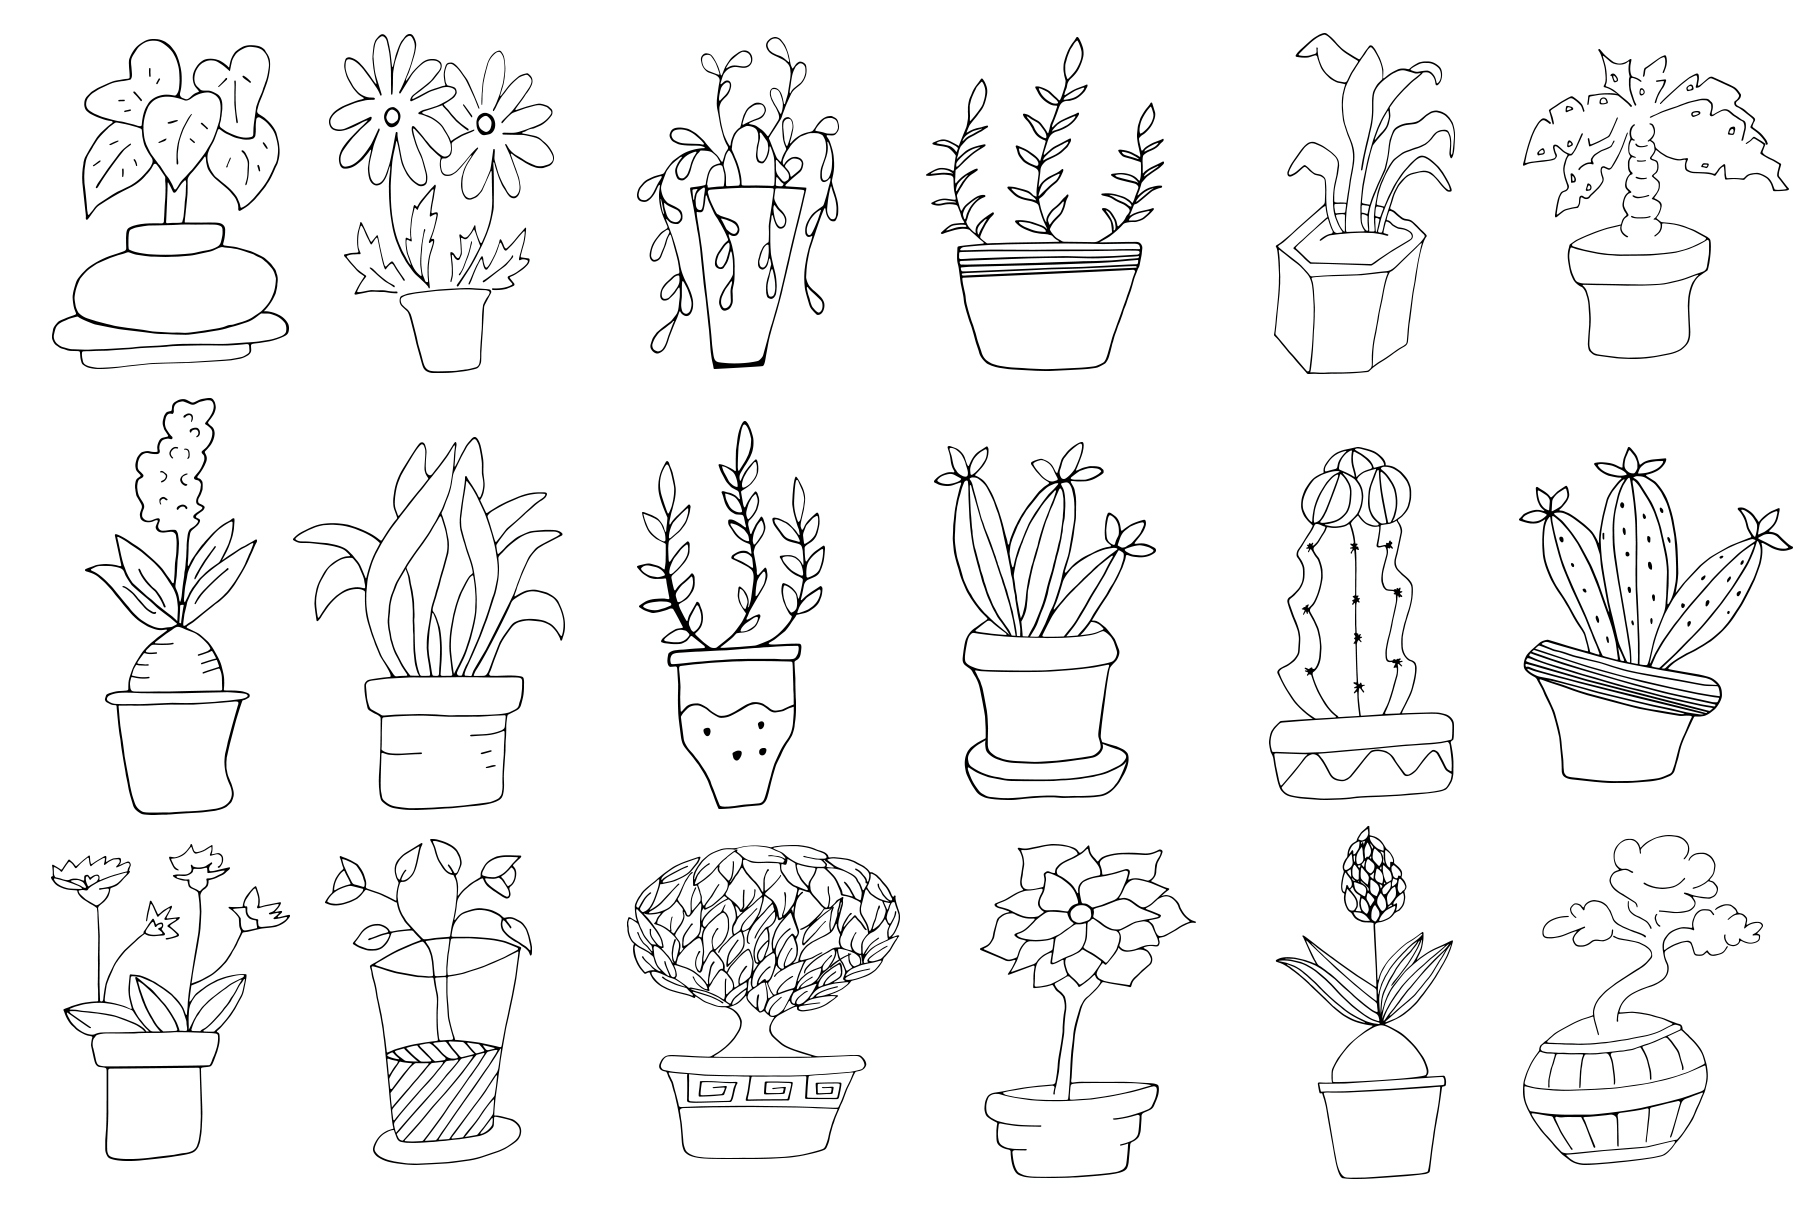 30+ Hand Drawn Doodle Potted Plants Cliparts